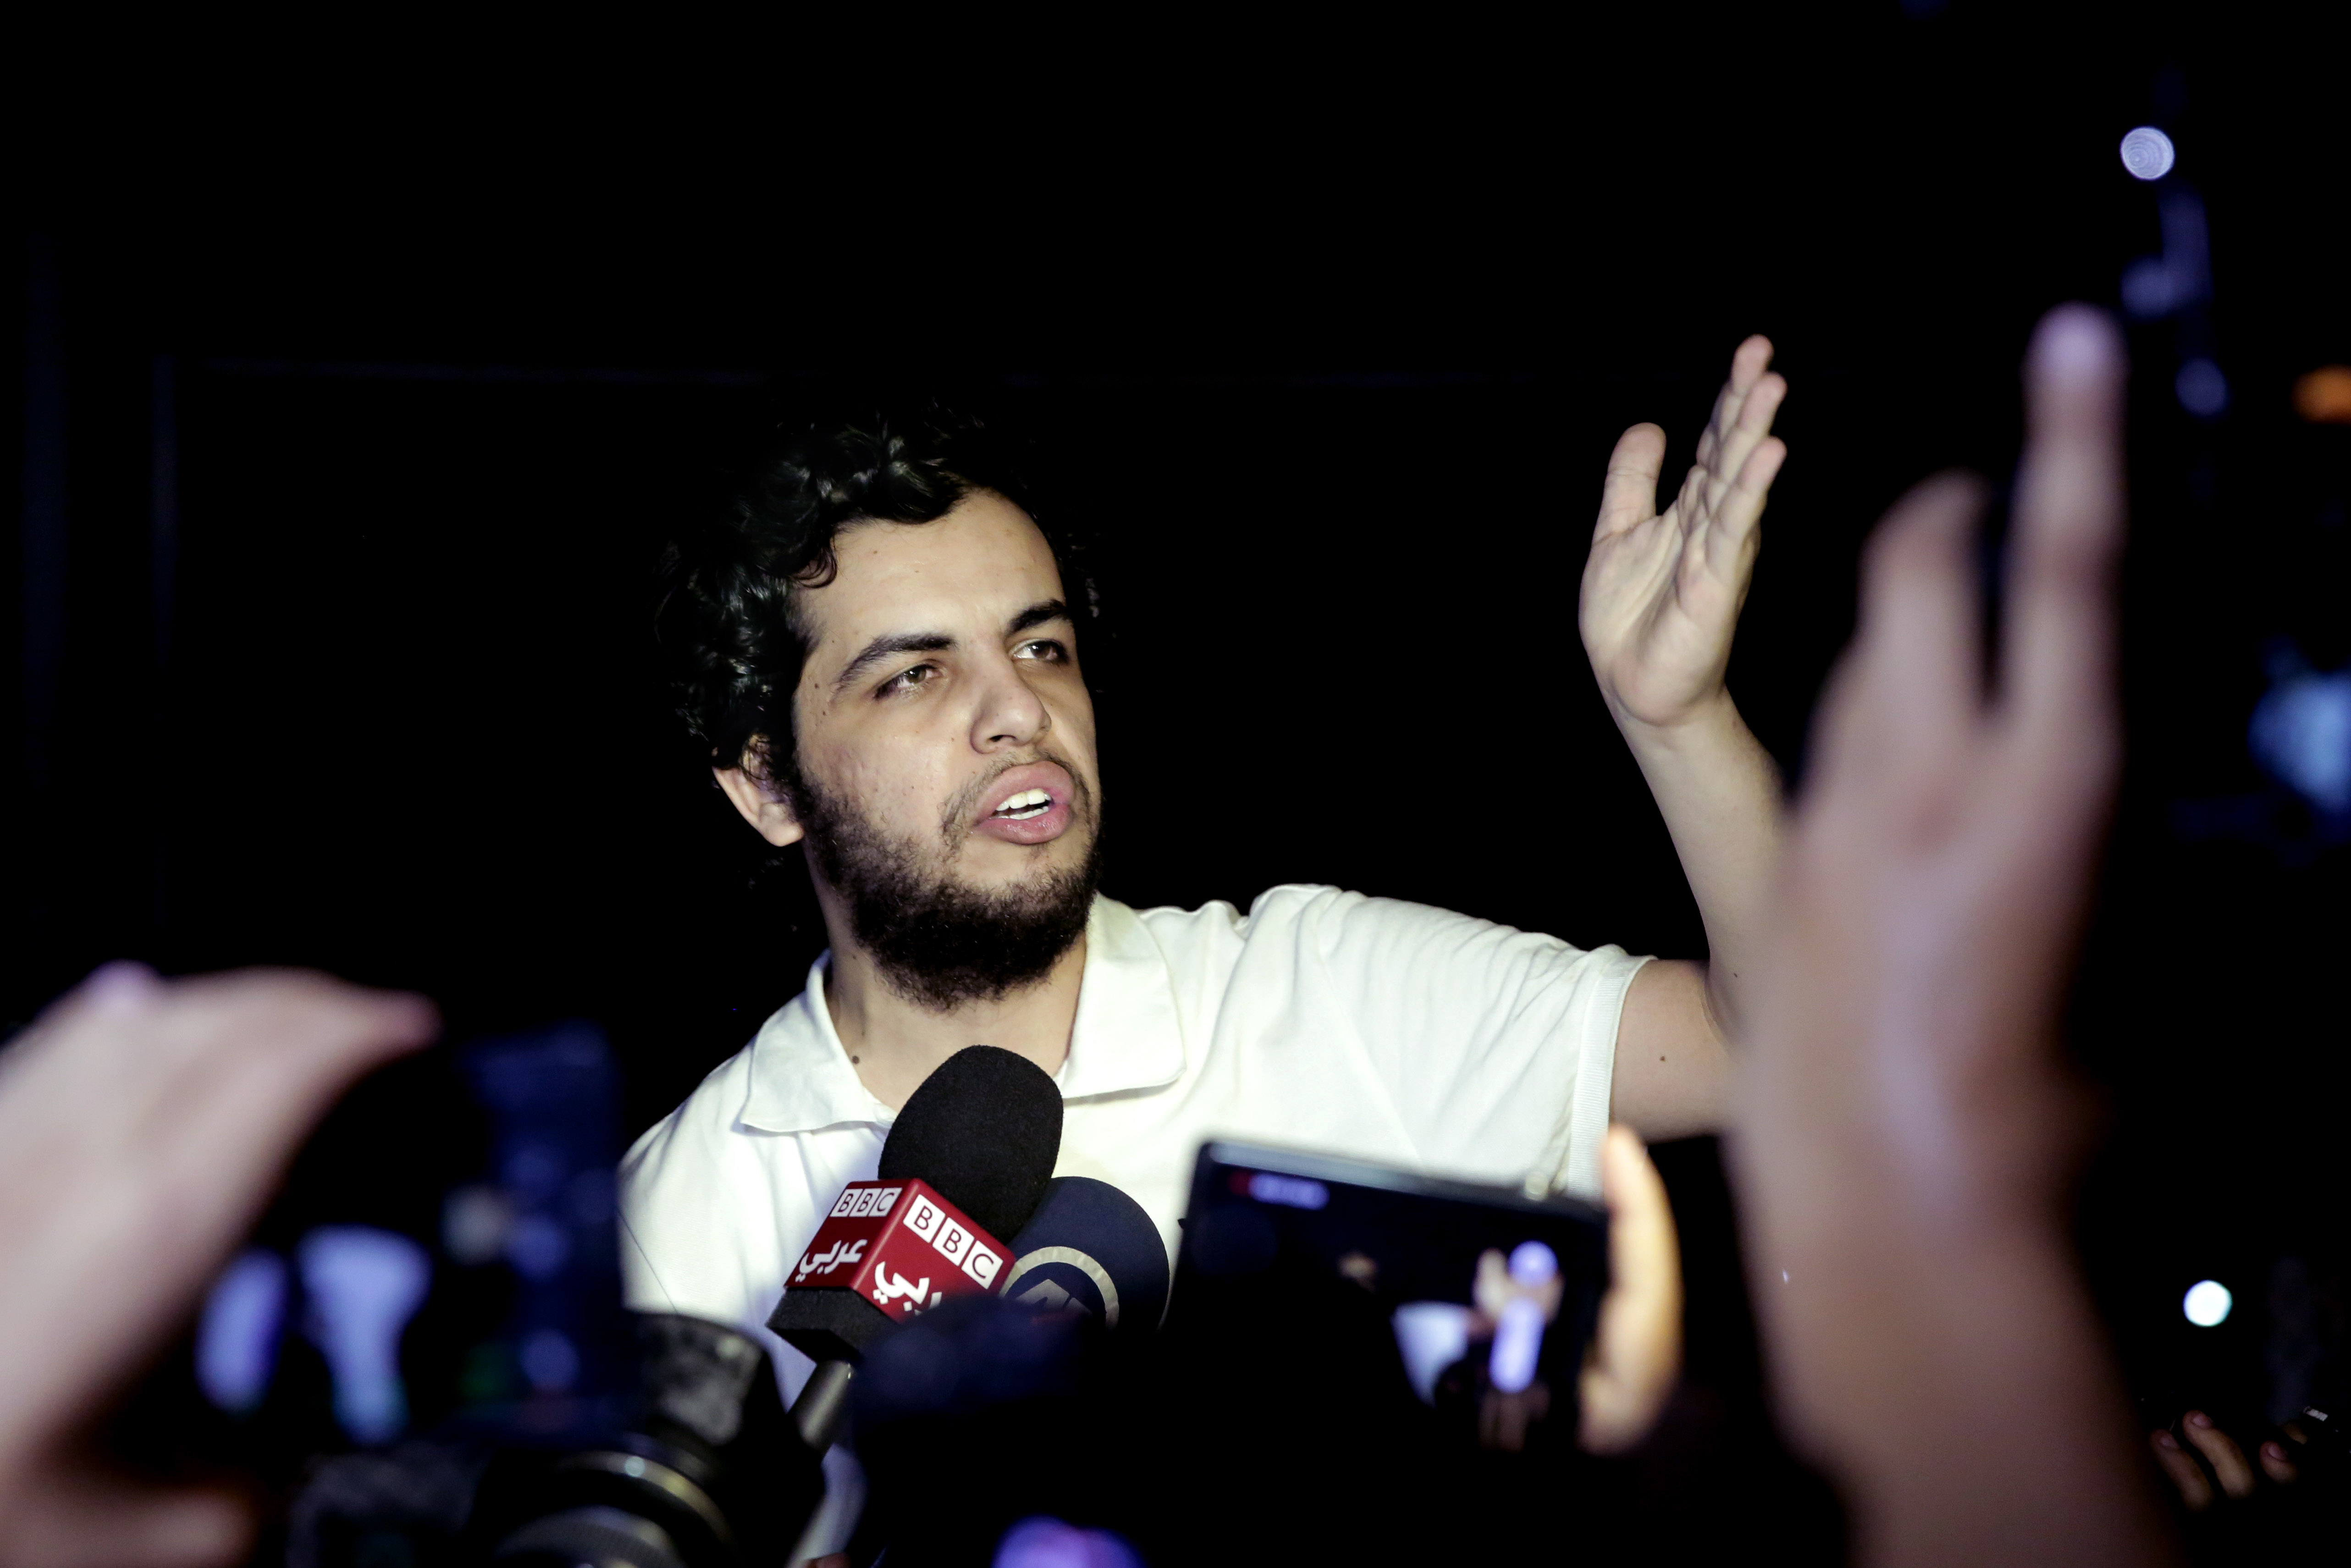 Al-Jazeera Arabic service journalist Abdullah Elshamy, who had been on hunger strike for more than four months to protest his prolonged detention without charges, speaks to the media after his release from detention in Cairo on Tuesday, June 17, 2014.